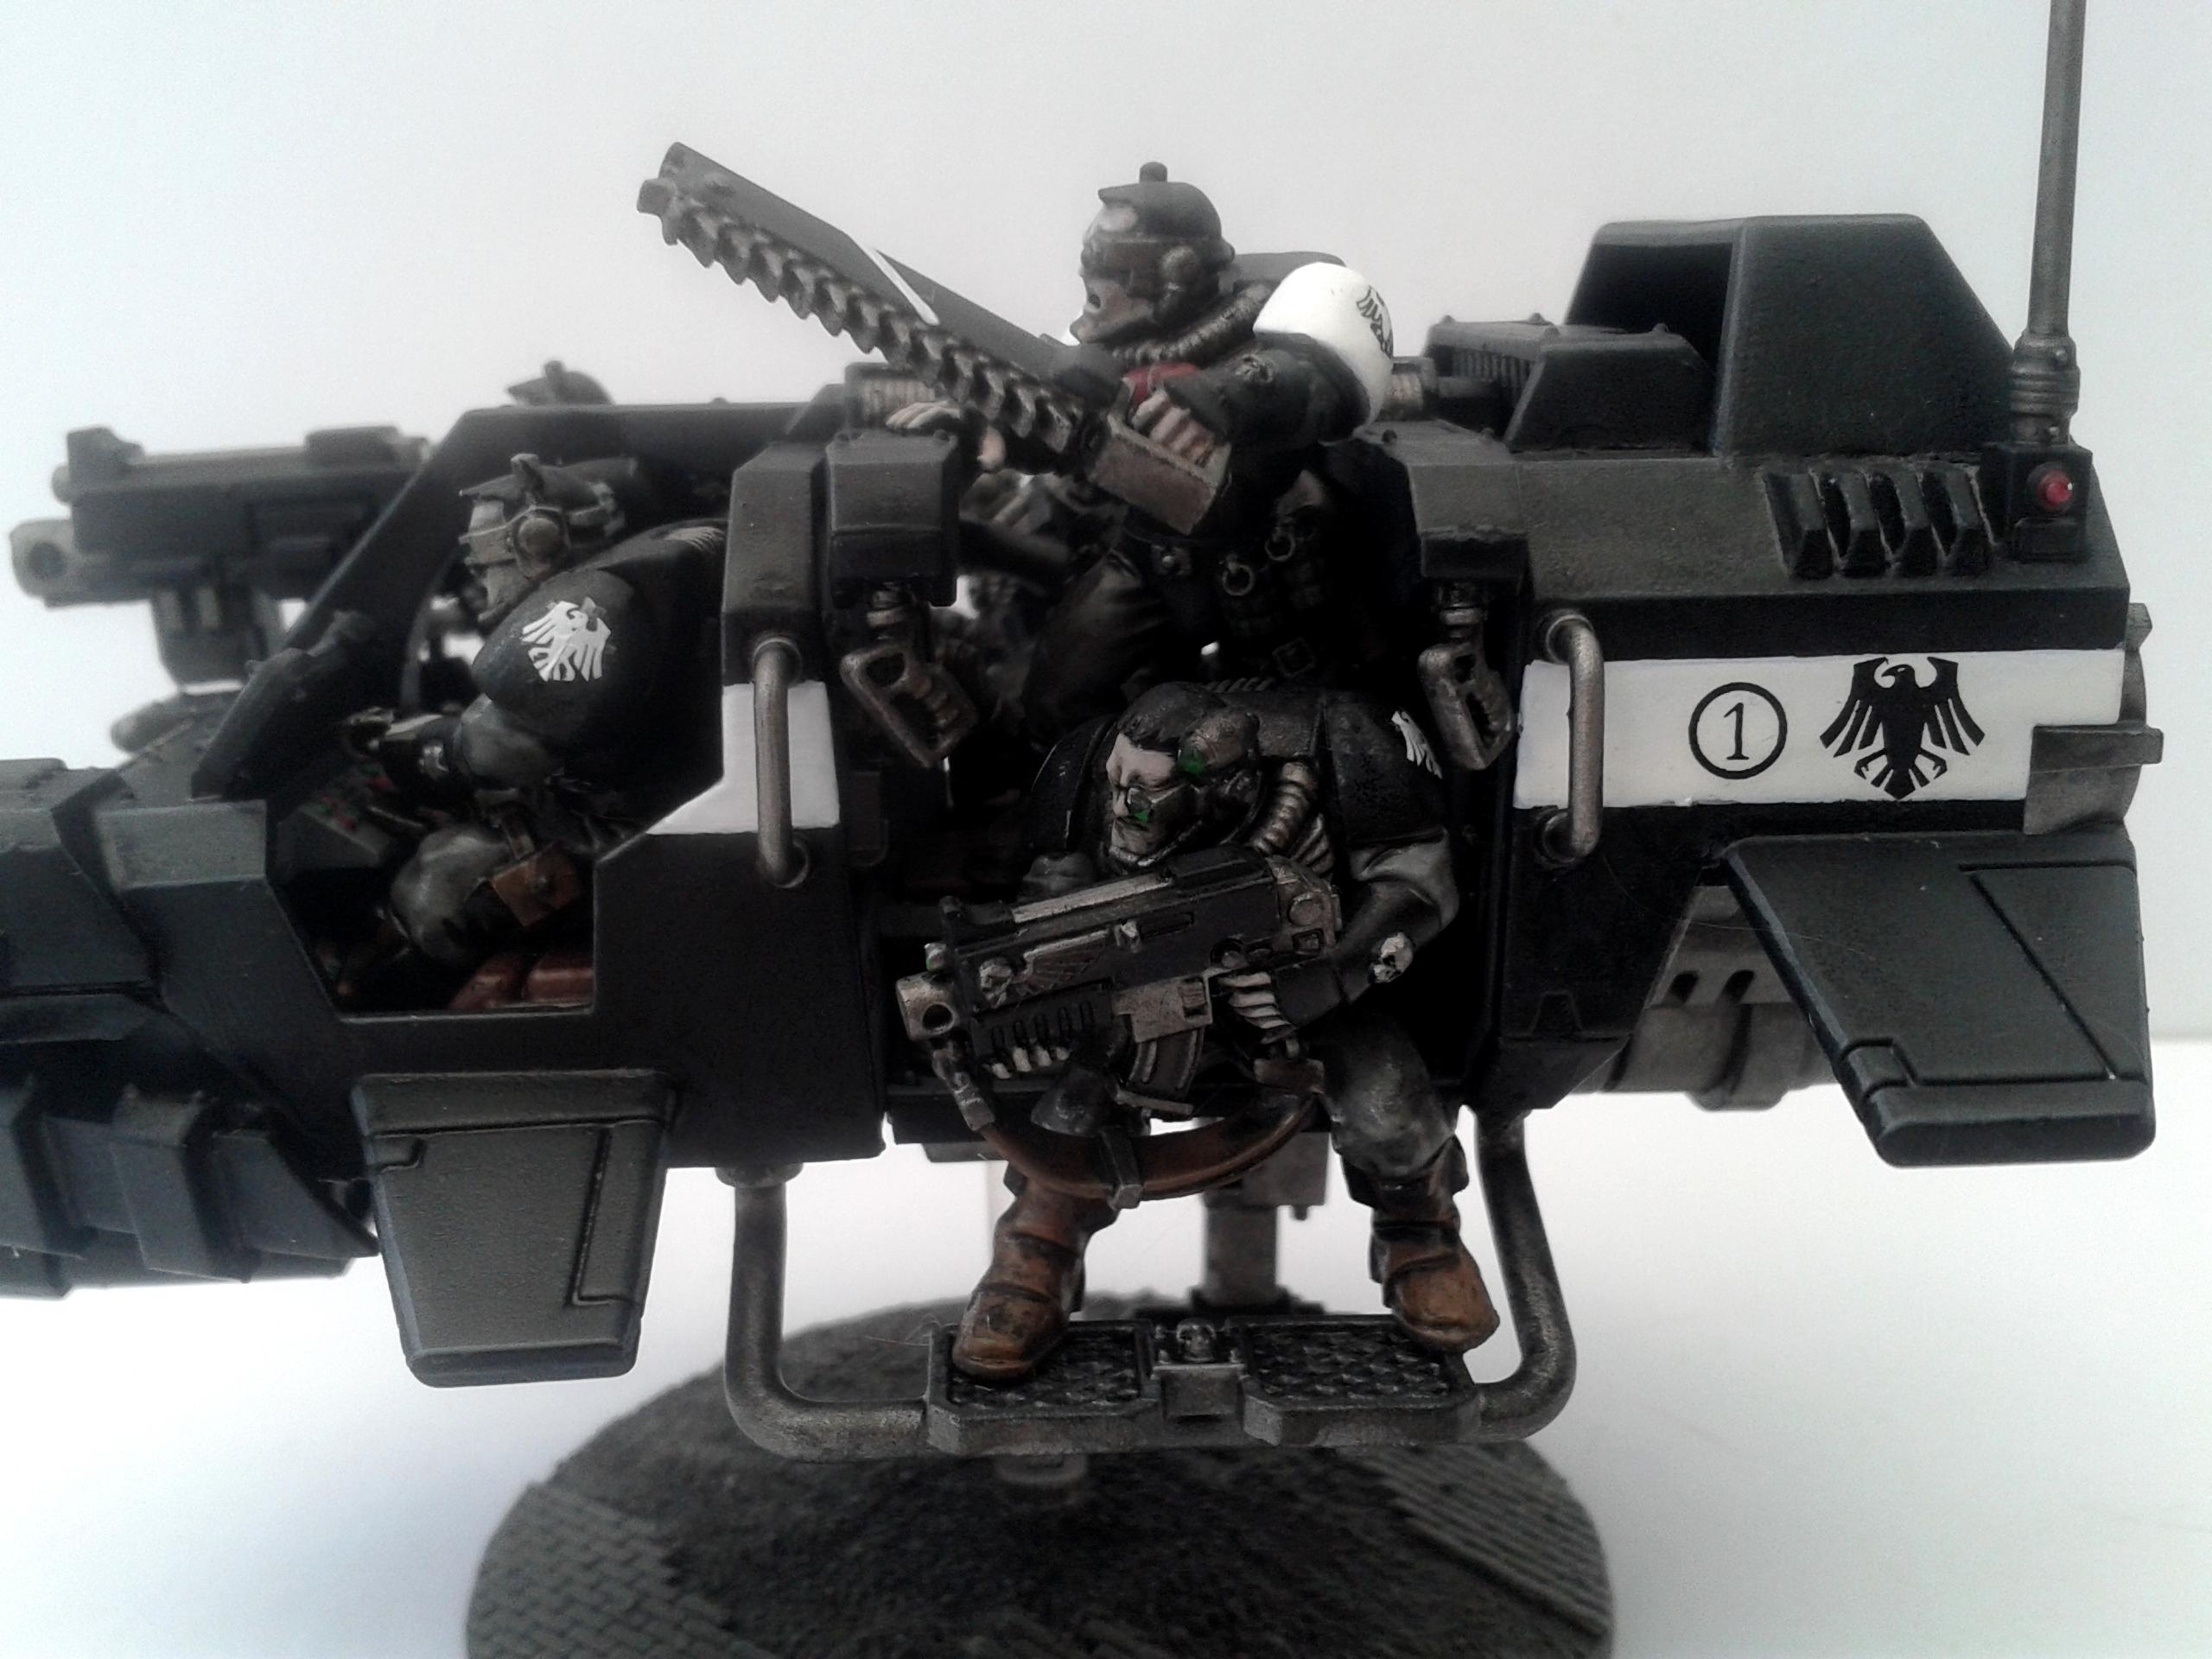 Black, Boltgun, Chapter, Guard, Land, Launcher, Markings, Pistol, Raven, Scouts, Space, Space Marines, Speeder, Squad, Staff, Stave, Storm, Tactics, Warhammer 40,000